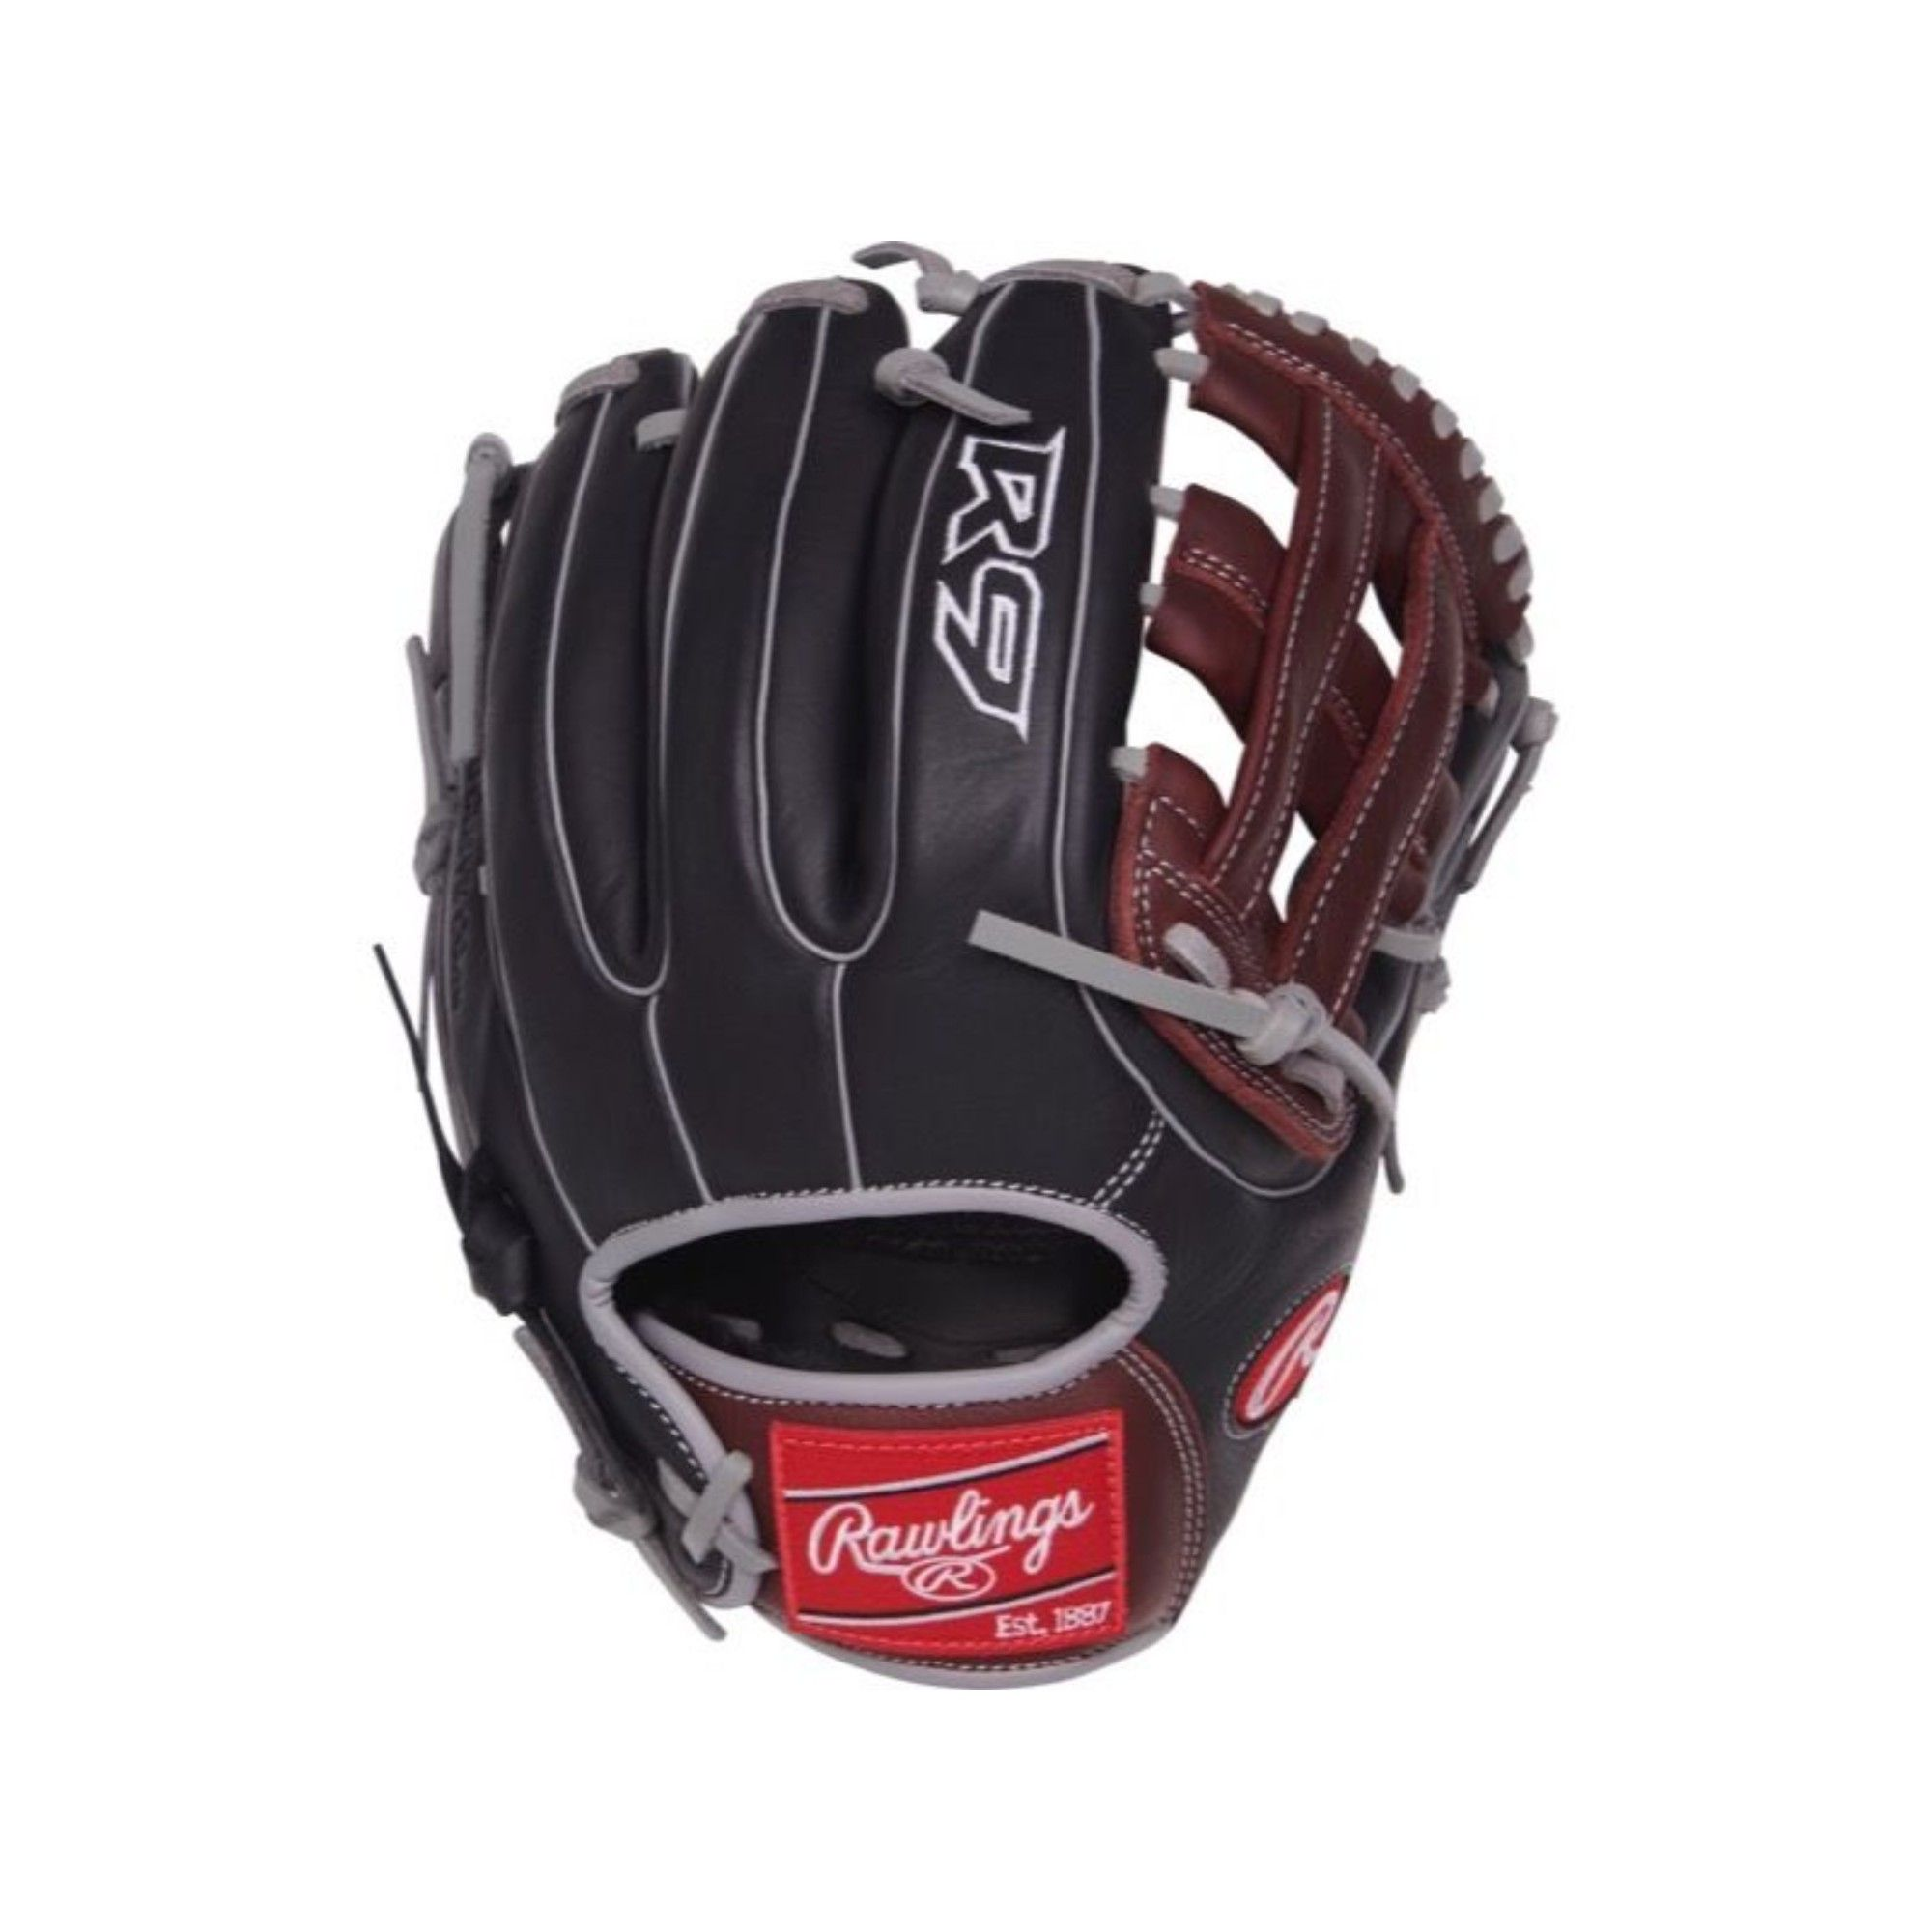 Rawlings R9 Series 11 75 Inf Glove Rh Adult Unisex Gloves Youth Baseball Gloves Gold Gloves